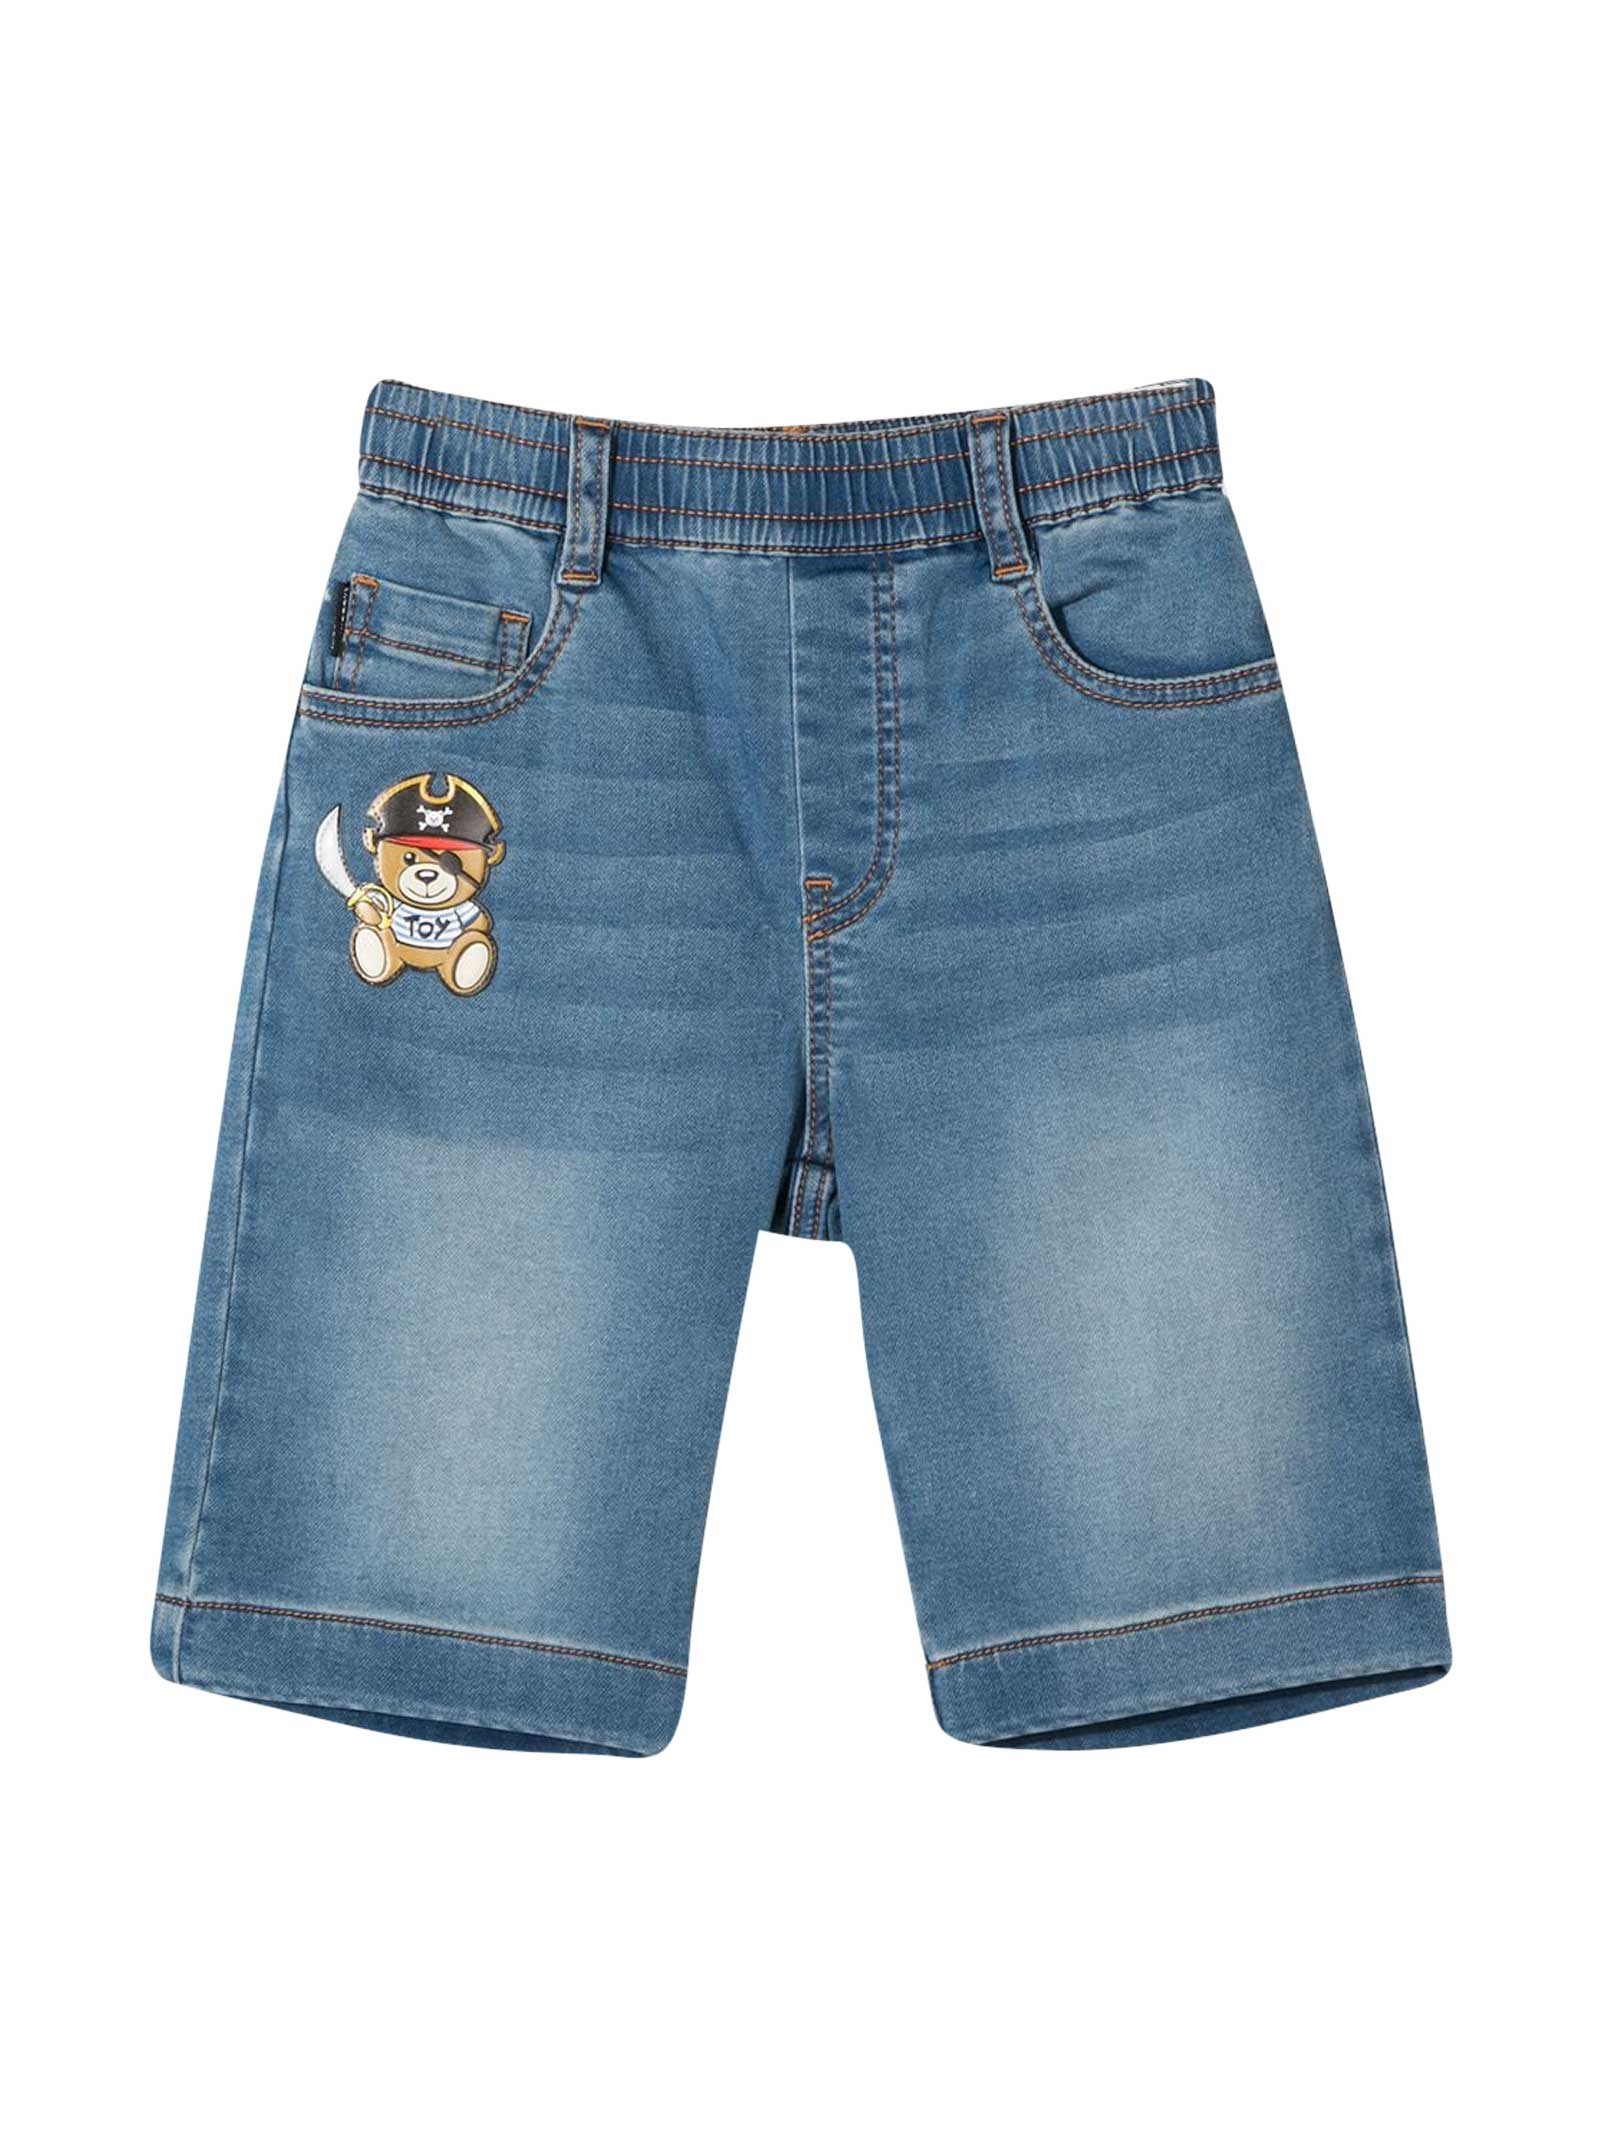 Moschino Denim Bermuda With Applications